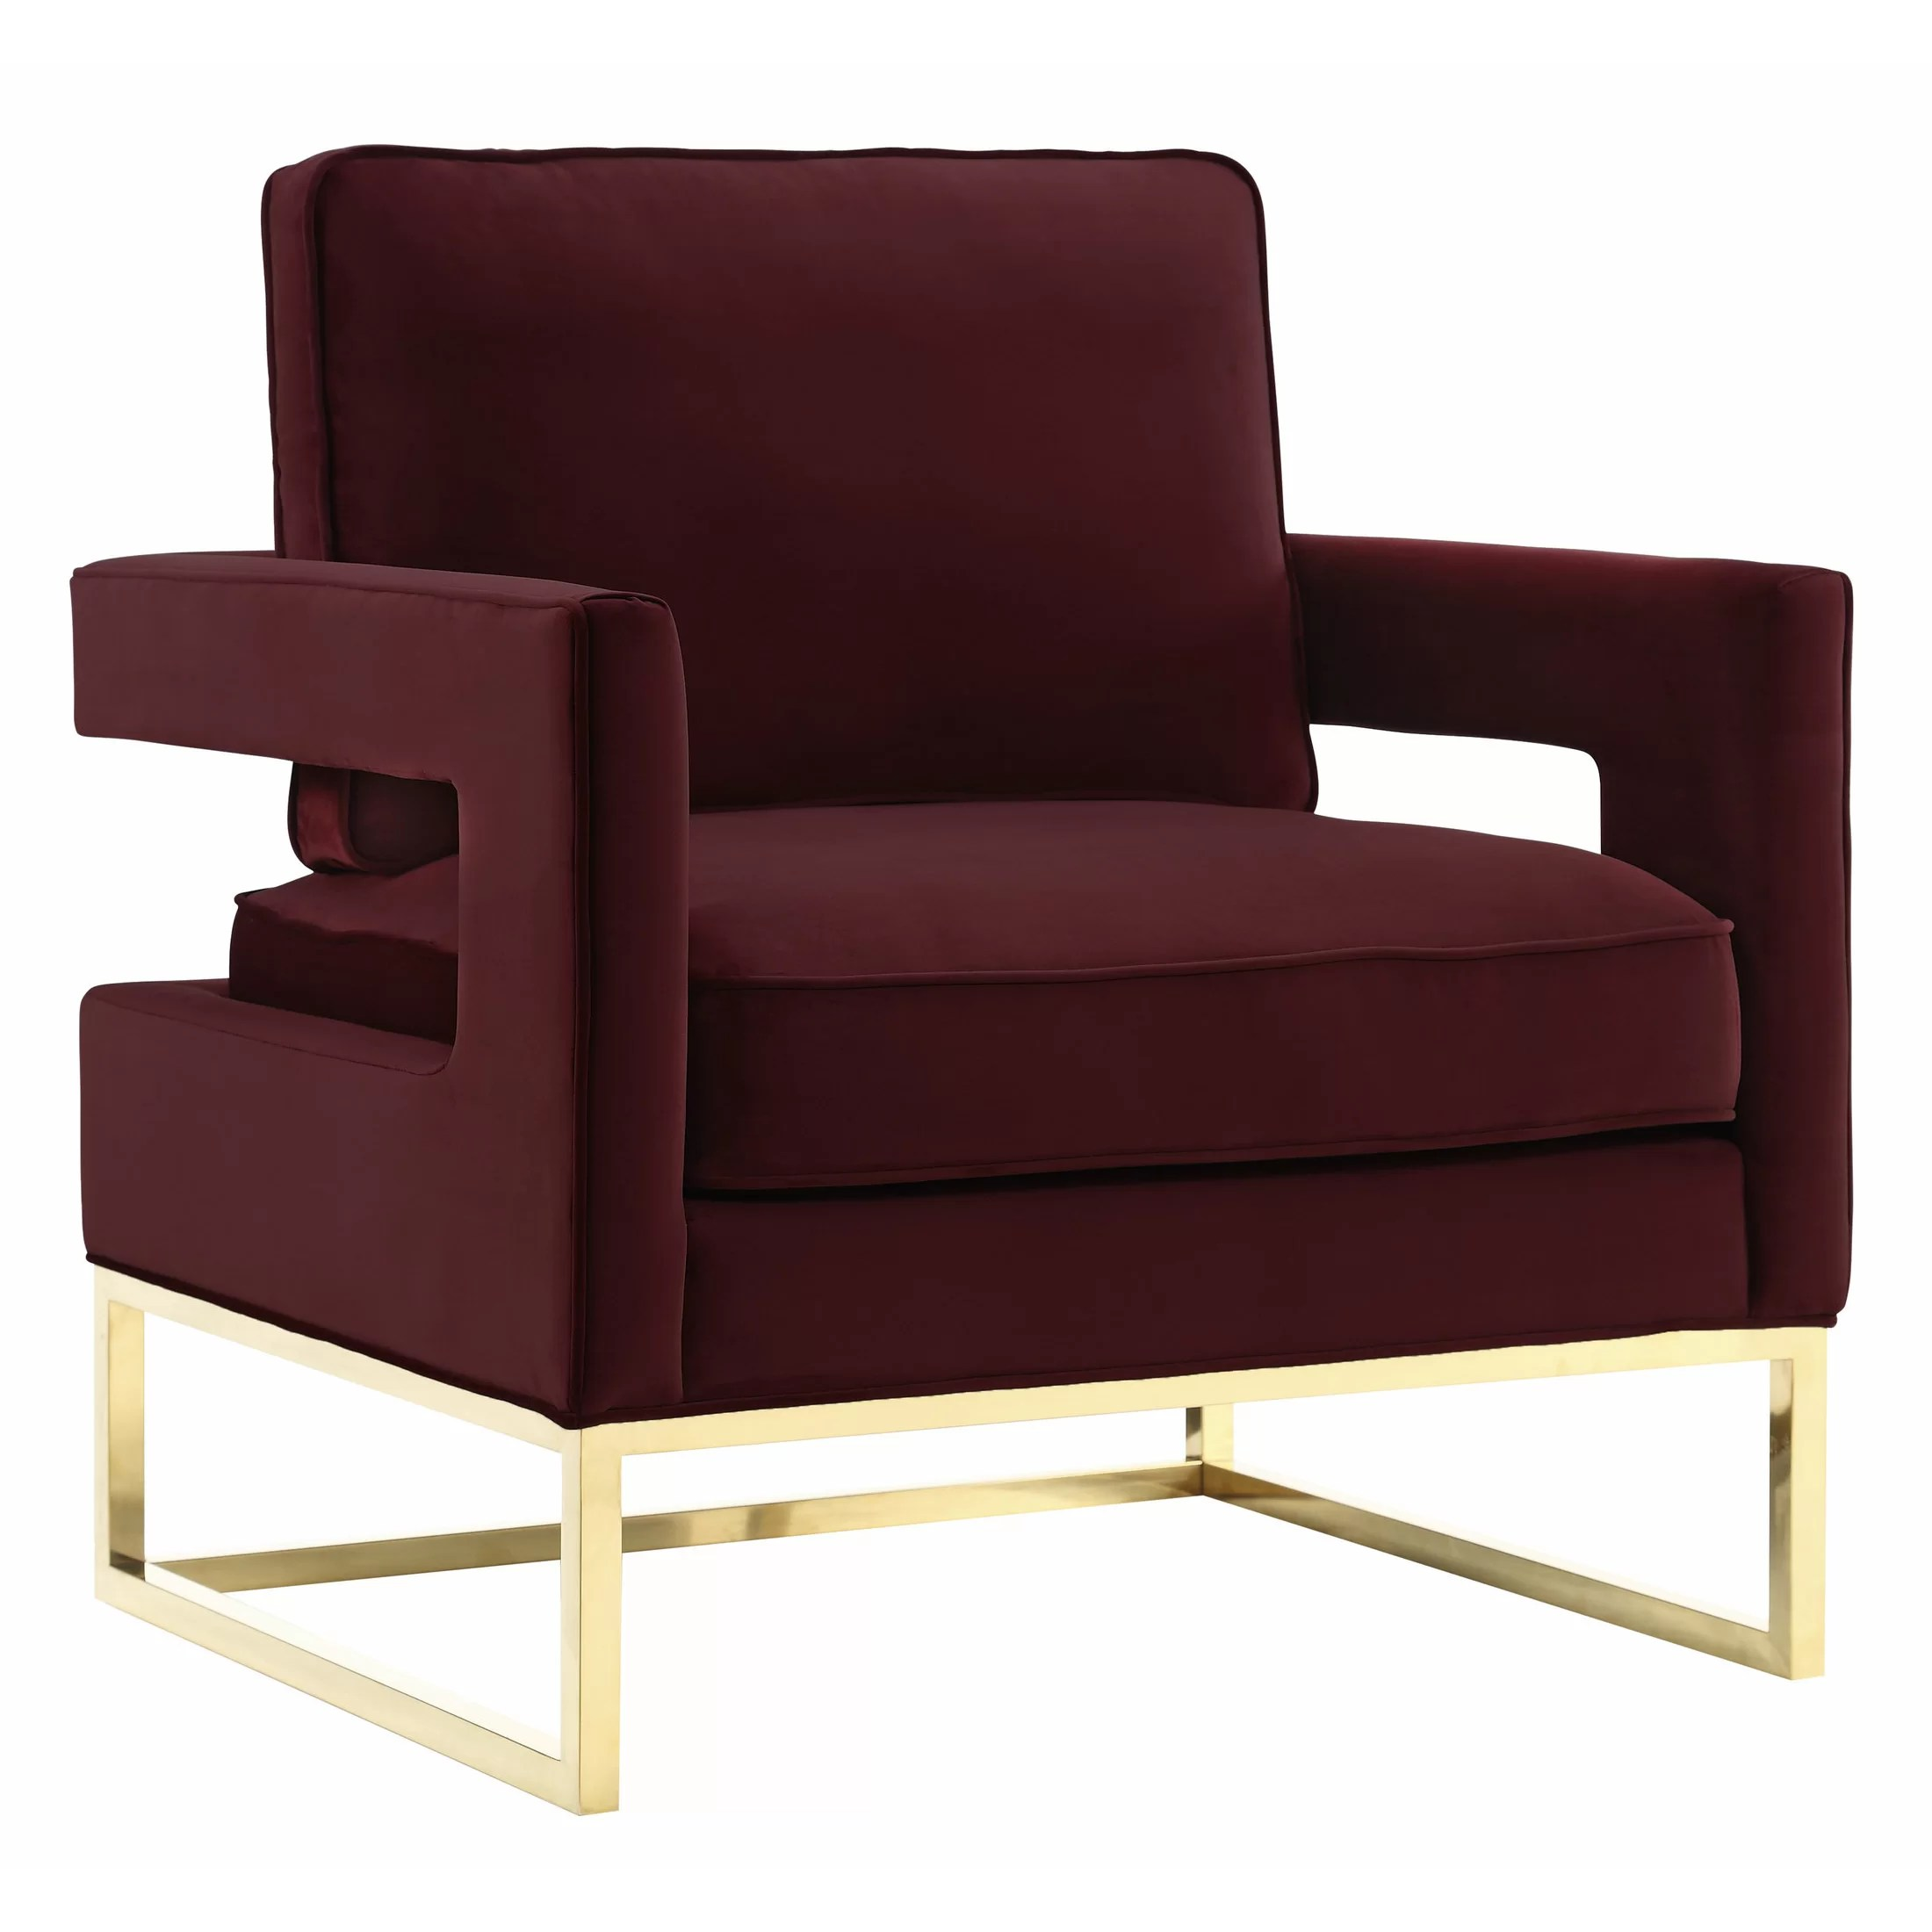 avery's chair covers and more high back leather dining chairs australia mercer41 spade arm reviews wayfair